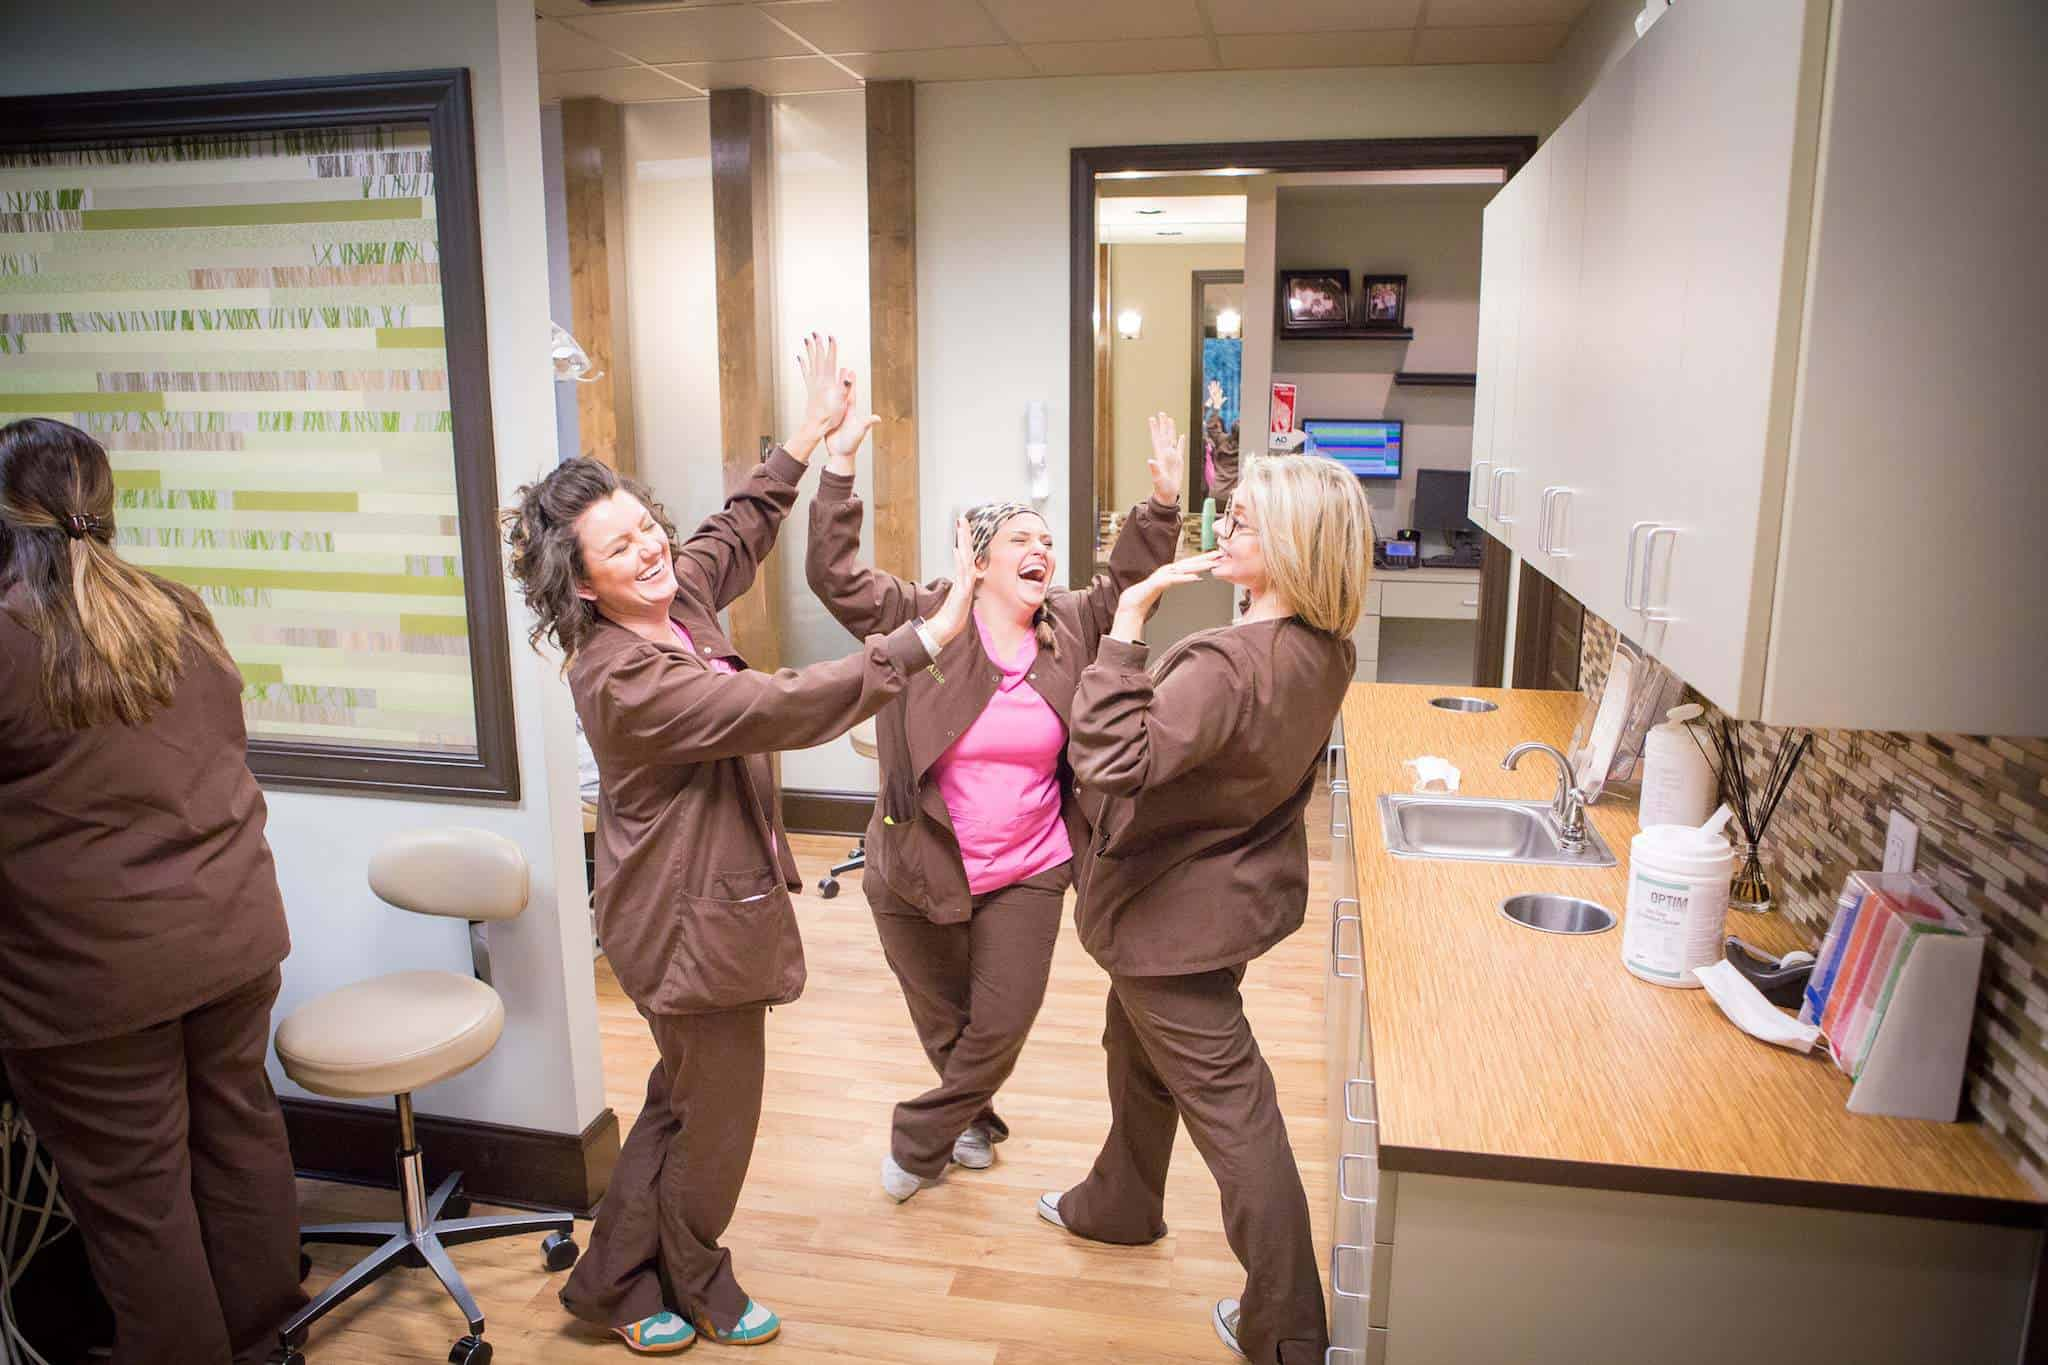 Fergus Orthodontics Jonesboro Arkansas Teams Candids 10 - Jonesboro Braces & Invisalign